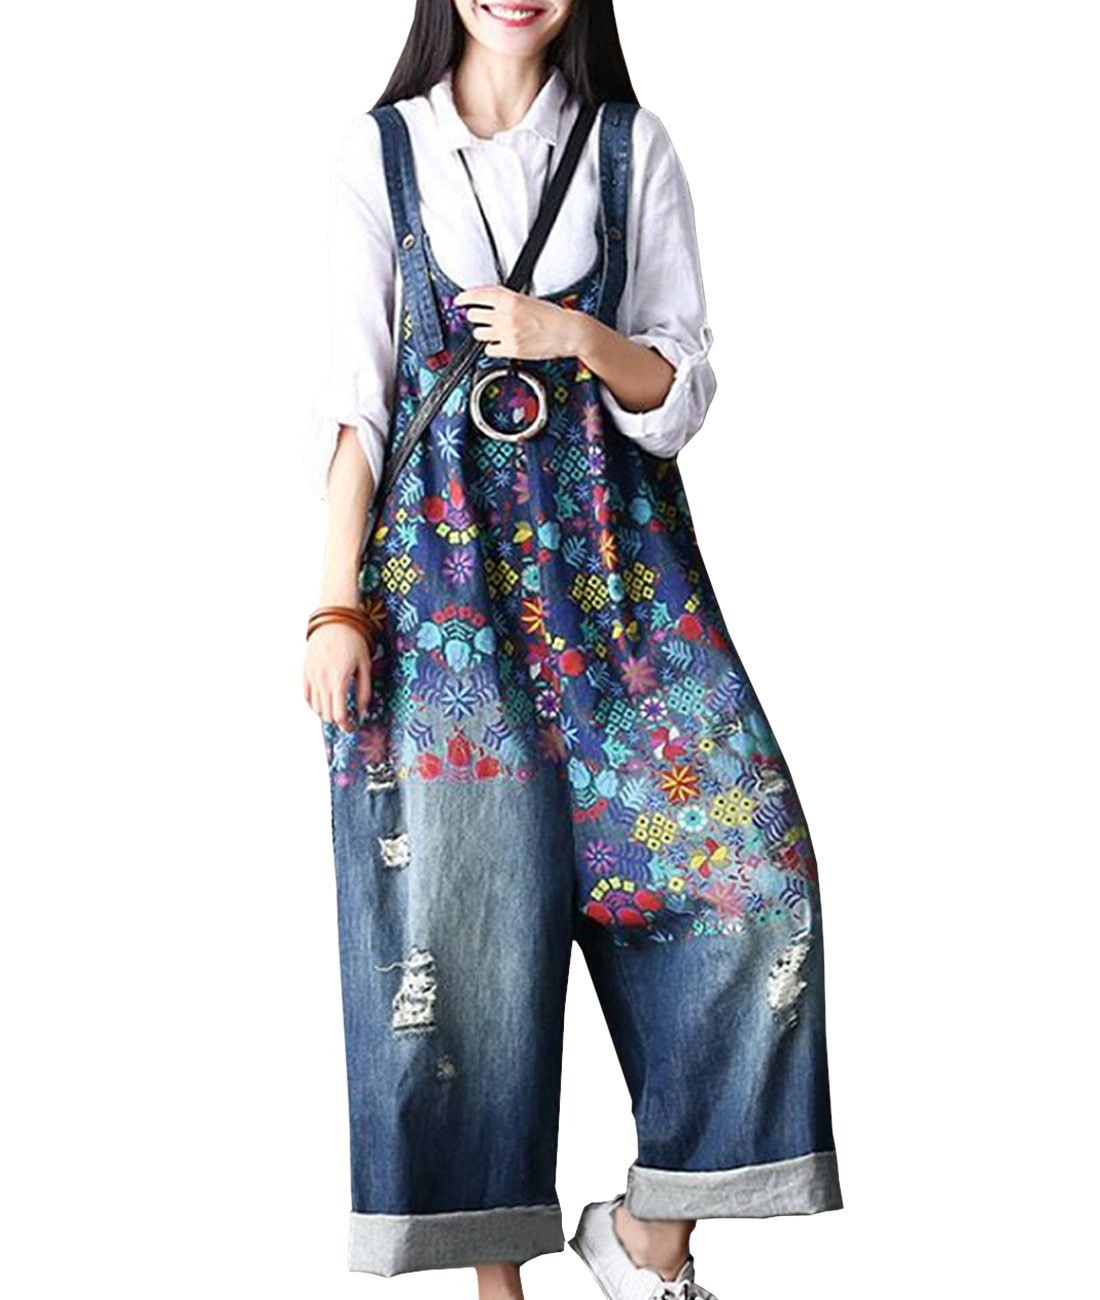 899d70ff8c3 YESNO P60 Women Jeans Cropped Pants Overalls Jumpsuits Hand Painted Poled  Distressed Casual Loose Fit product